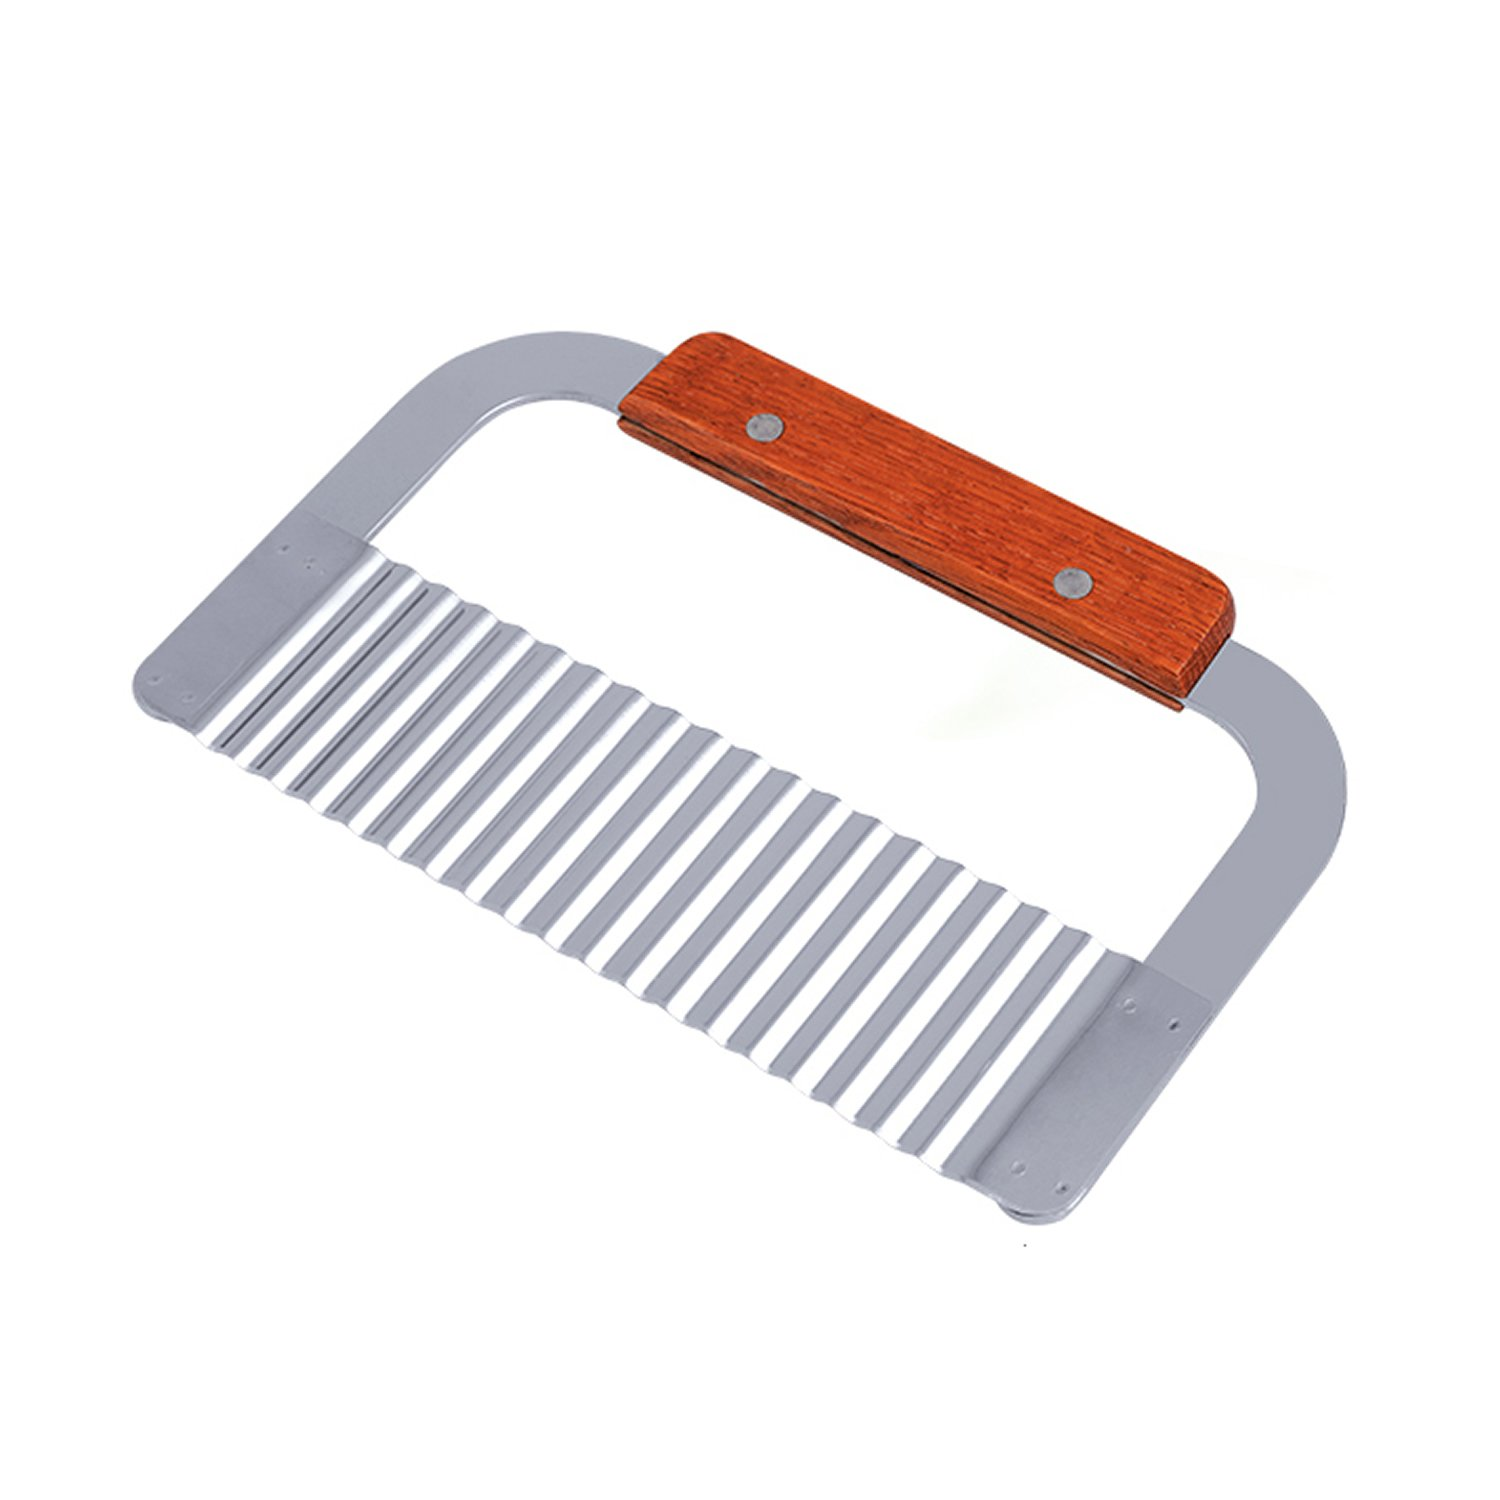 HAPPYNUTS Wavy Slicer and Wavy Vegetable Cutter 7-Inch Stainless Steel Wavy Crinkle Cutter Vegetable Carrot Potato Chip Chopper GIVESURPRISE UK LTD